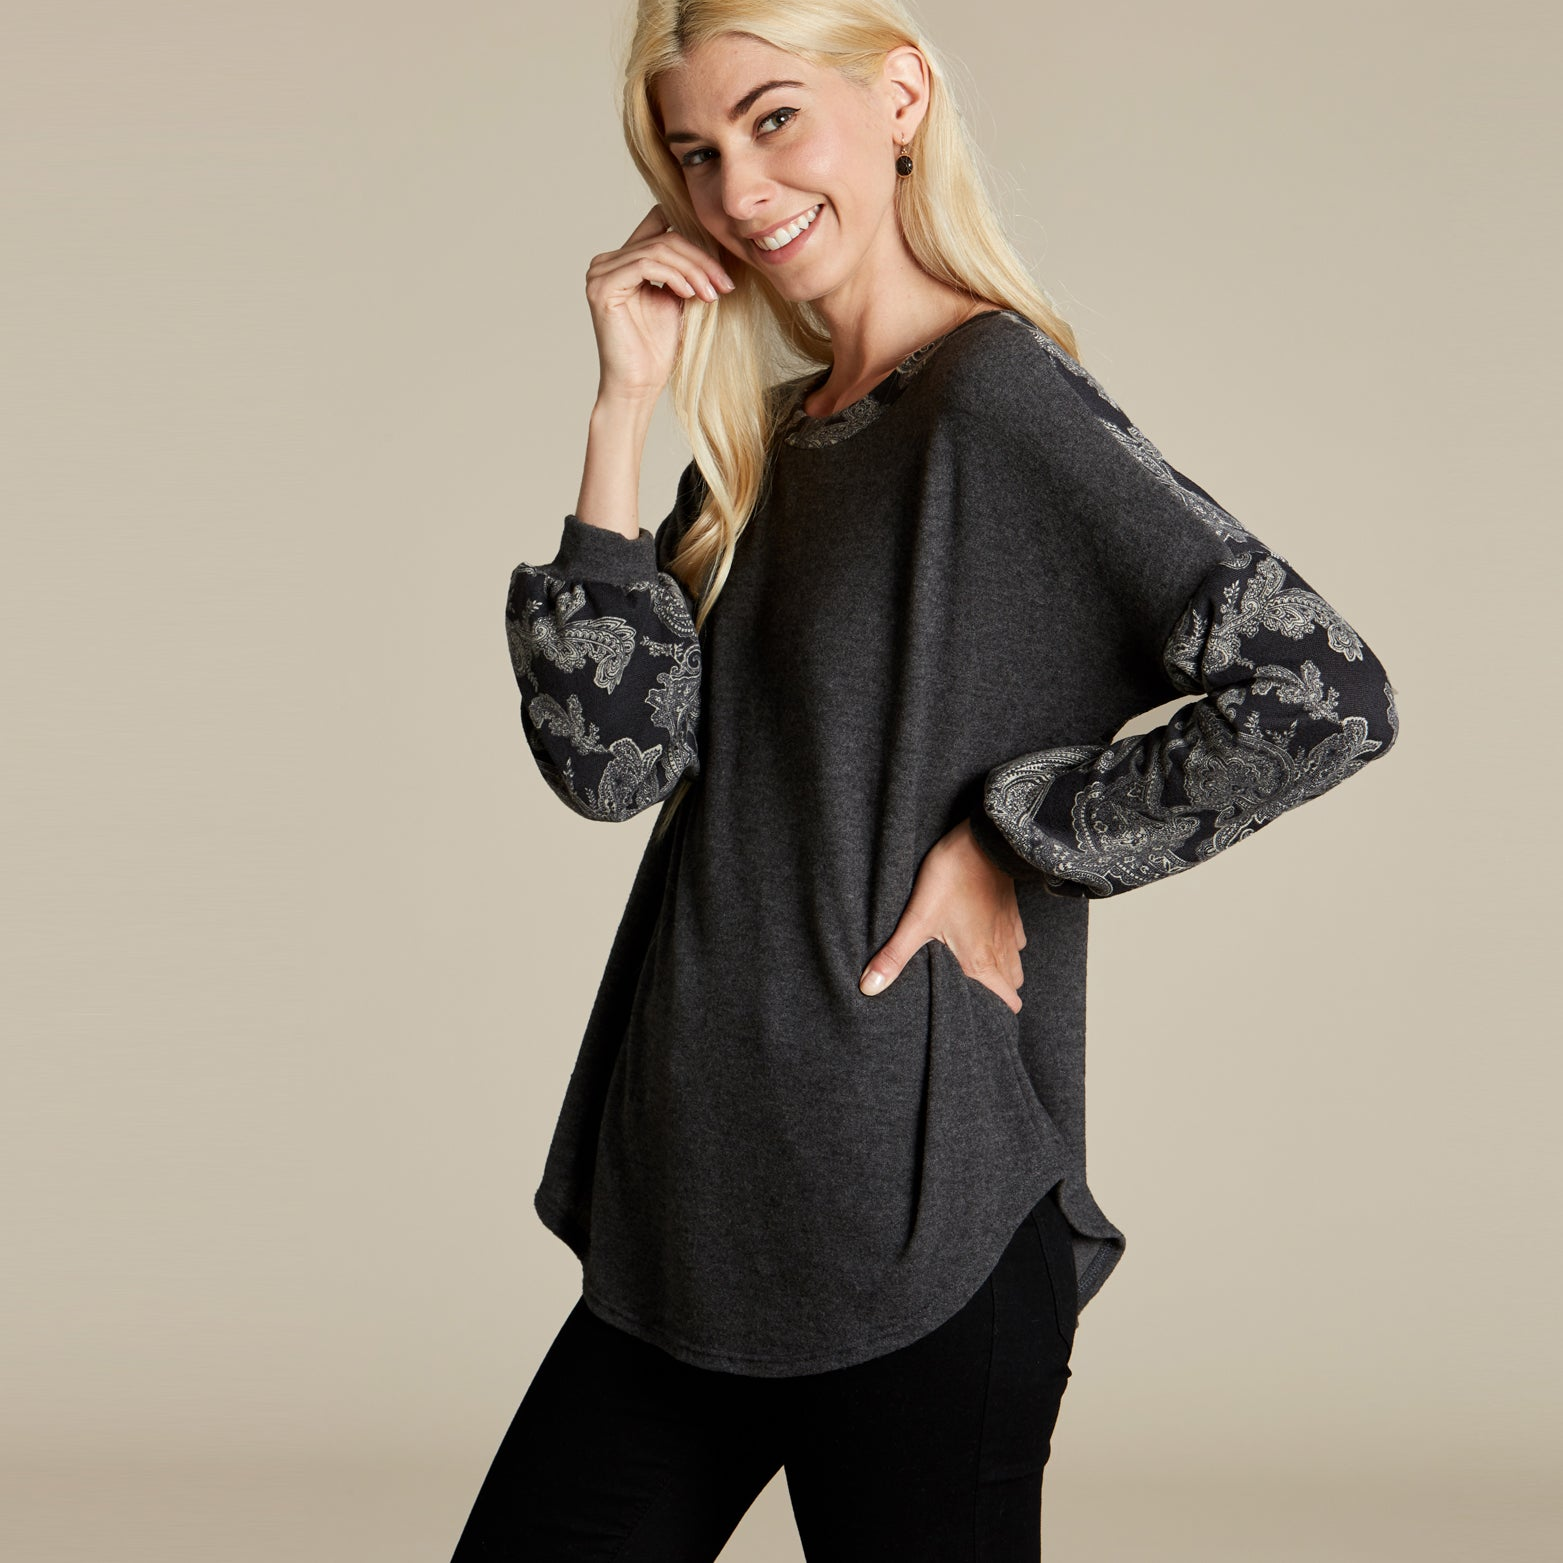 Brushed Cashmere Sweater - Love, Kuza